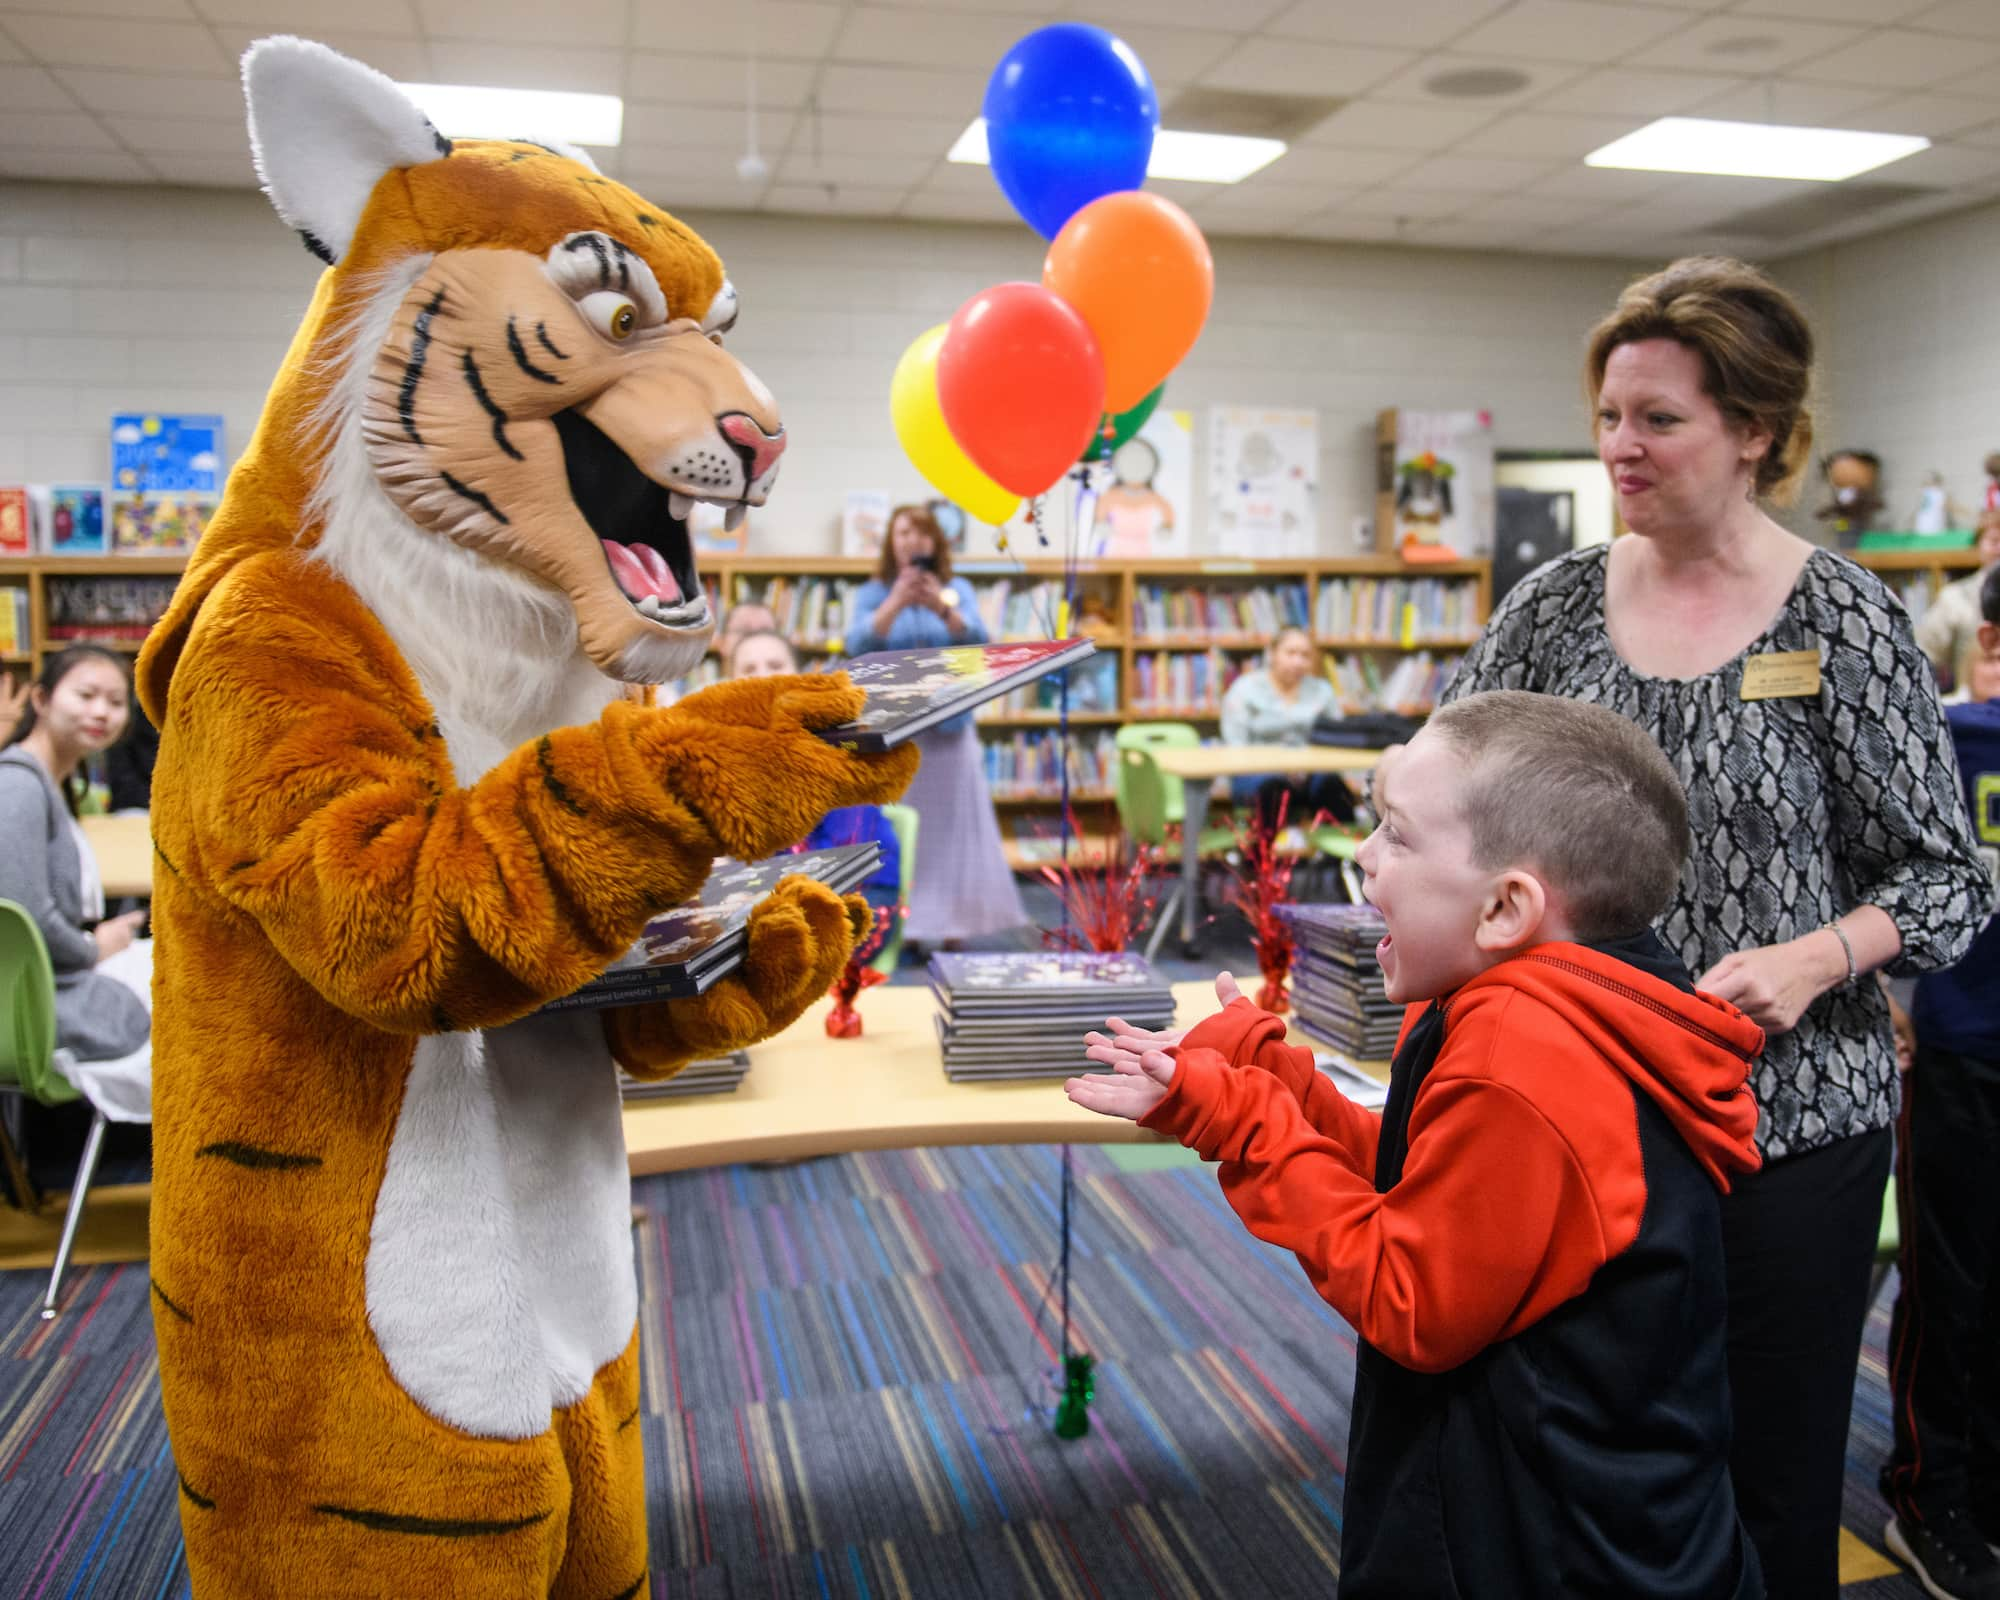 Student receives book from tiger mascot.